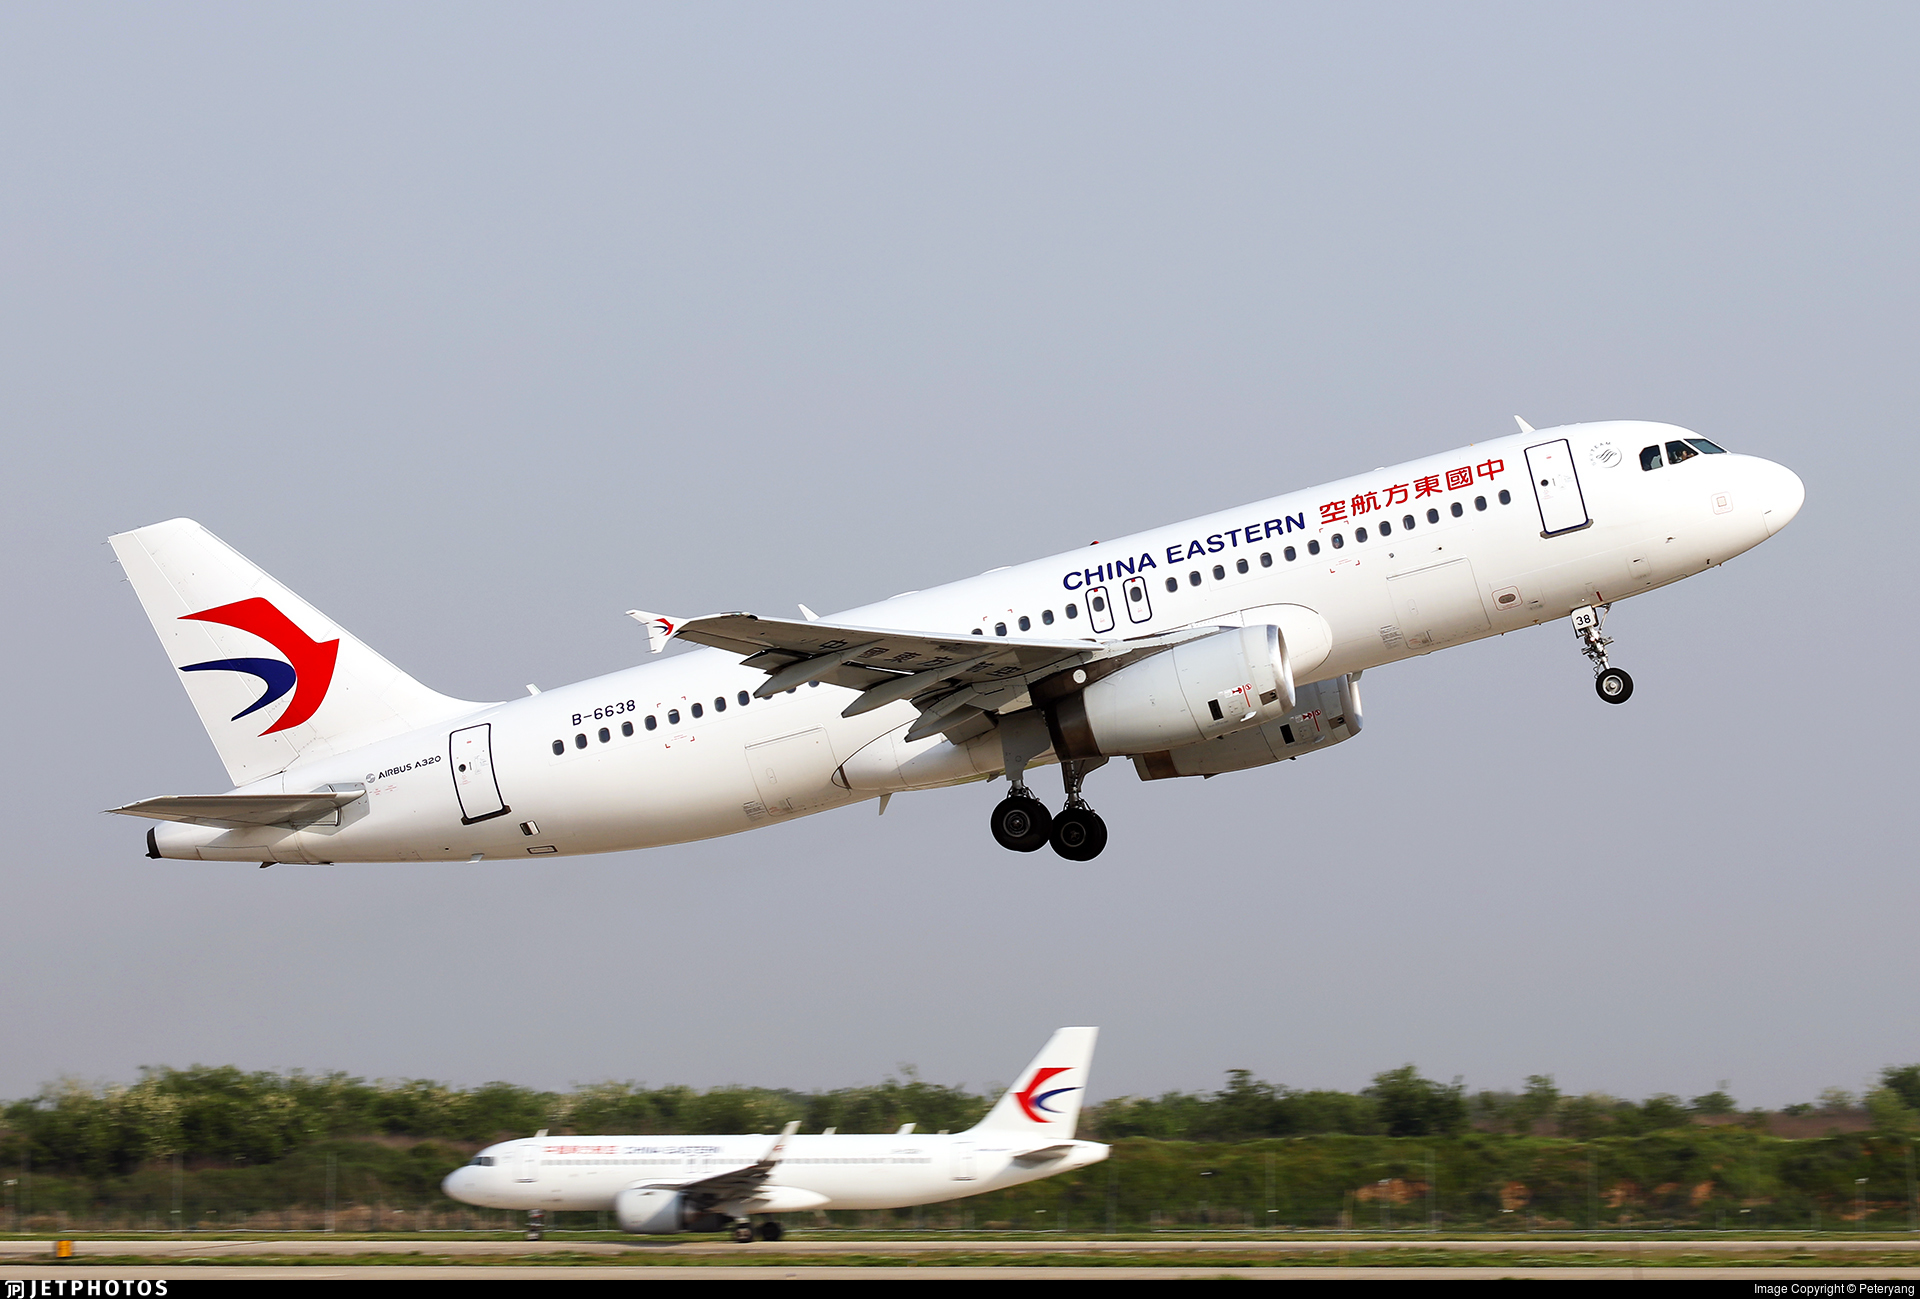 B-6638 - Airbus A320-232 - China Eastern Airlines